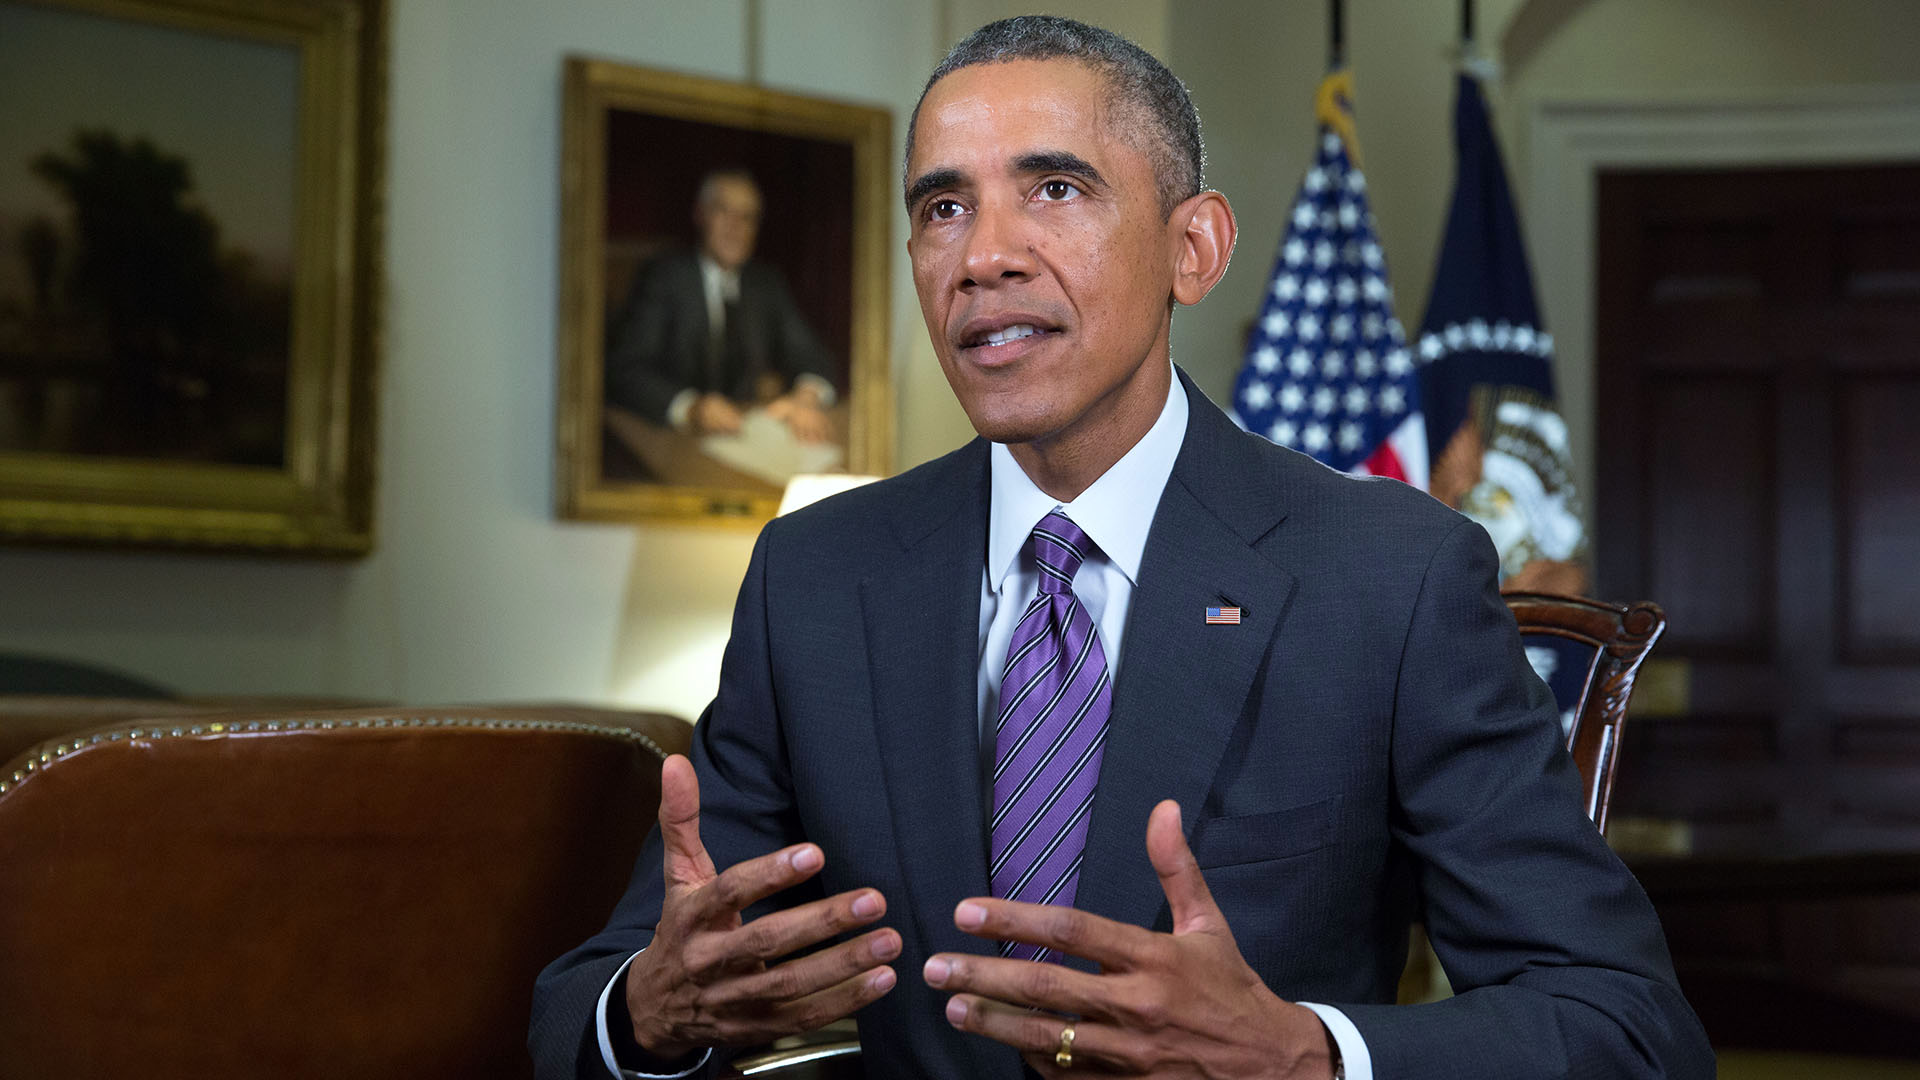 President Barack Obama tapes the Weekly Address in the Roosevelt Room of the White House, Aug. 29, 2014.